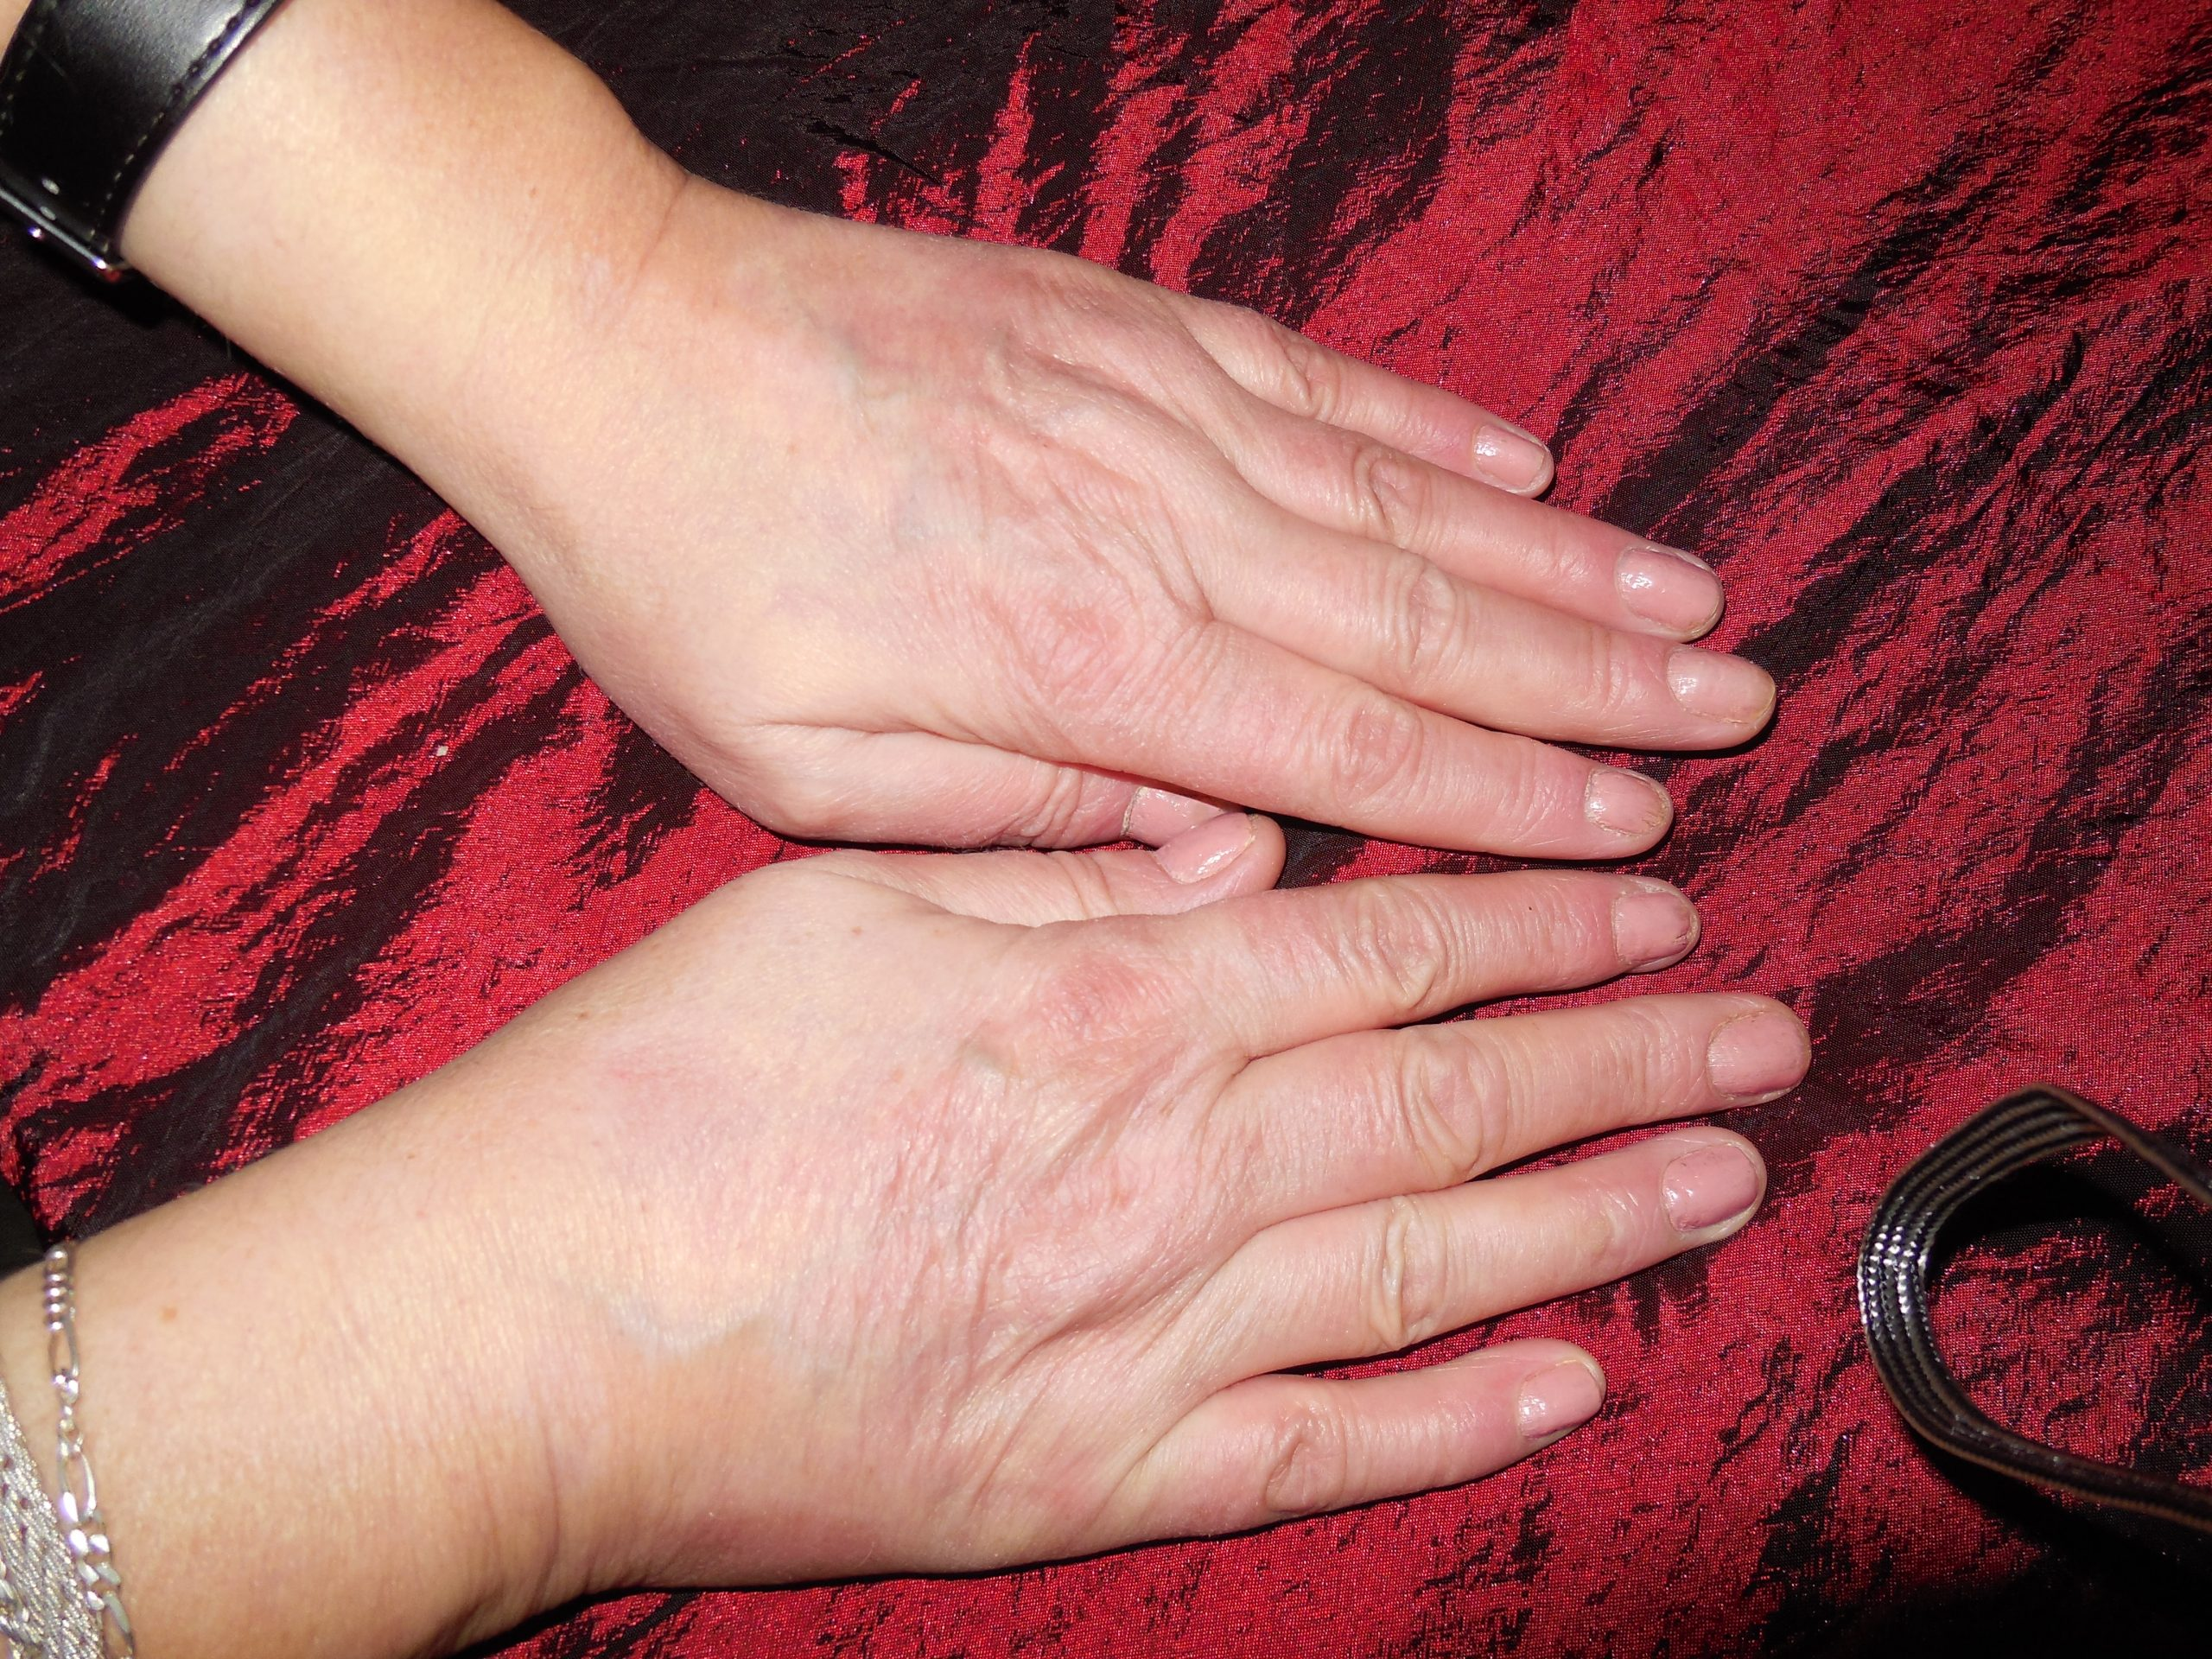 Woman's Healed hands after suffering from Psoriasis